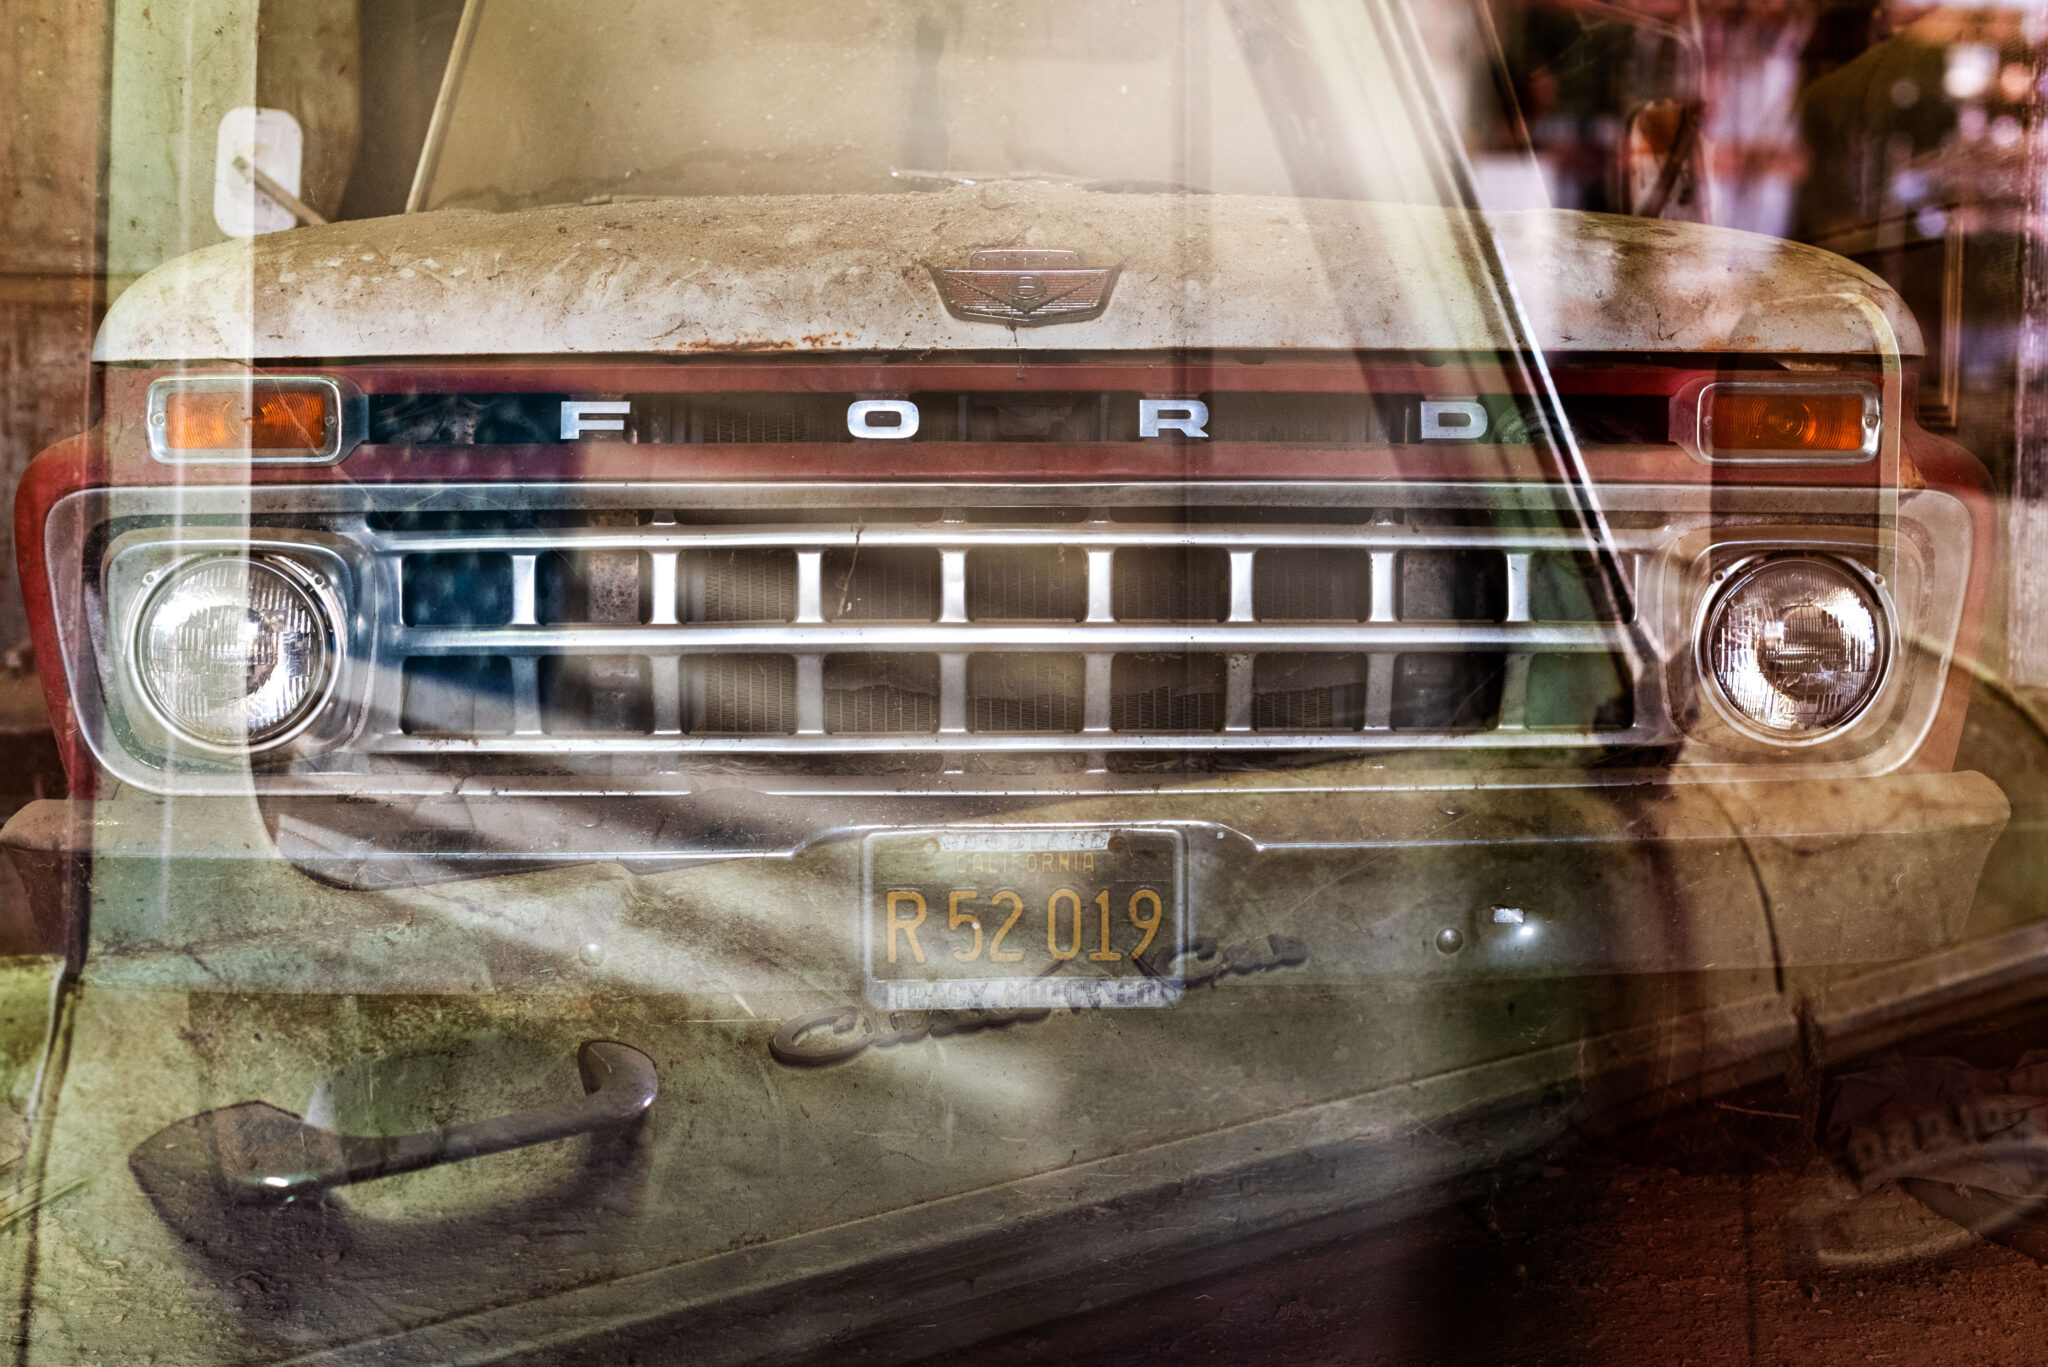 bunkhouse, multiple exposure, ford 100, pickup truck, farm, yolo county, central valley, woodland, california, agriculture, historic, olive farm, barn